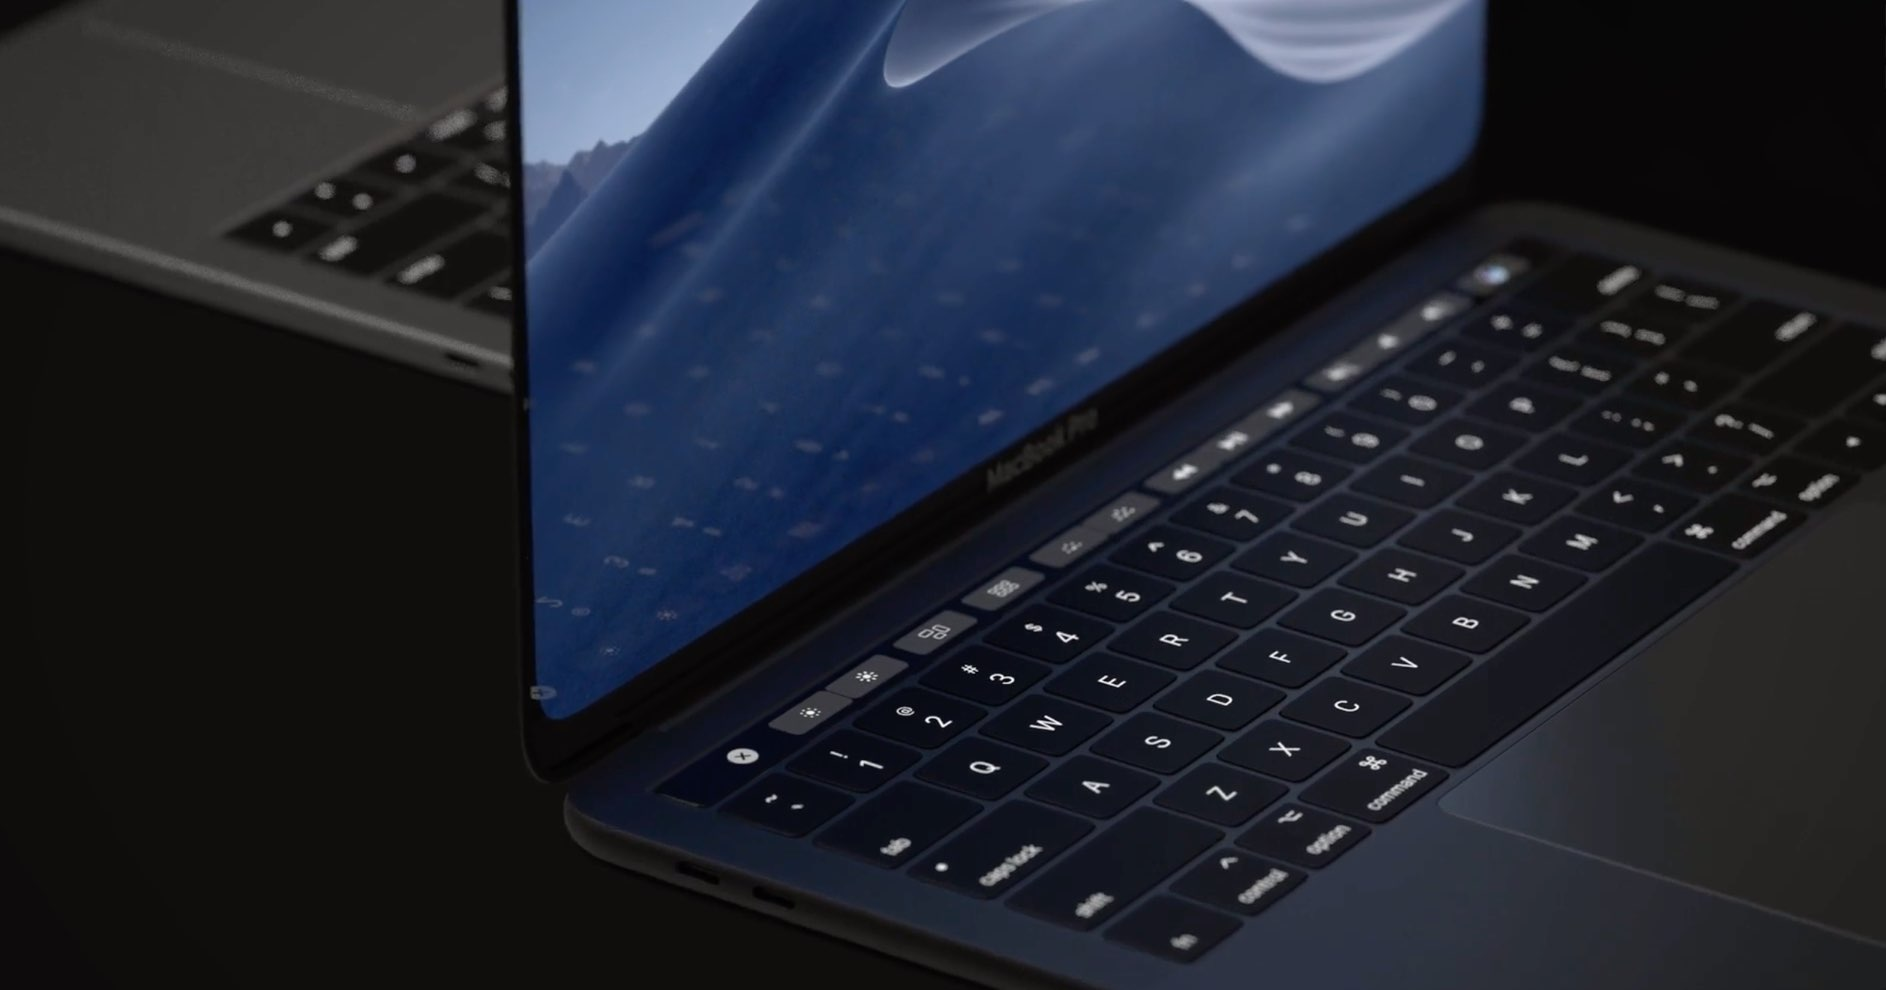 16-inch MacBook Pro predicted to ship this fall featuring a 3072x1920 Retina  LCD screen